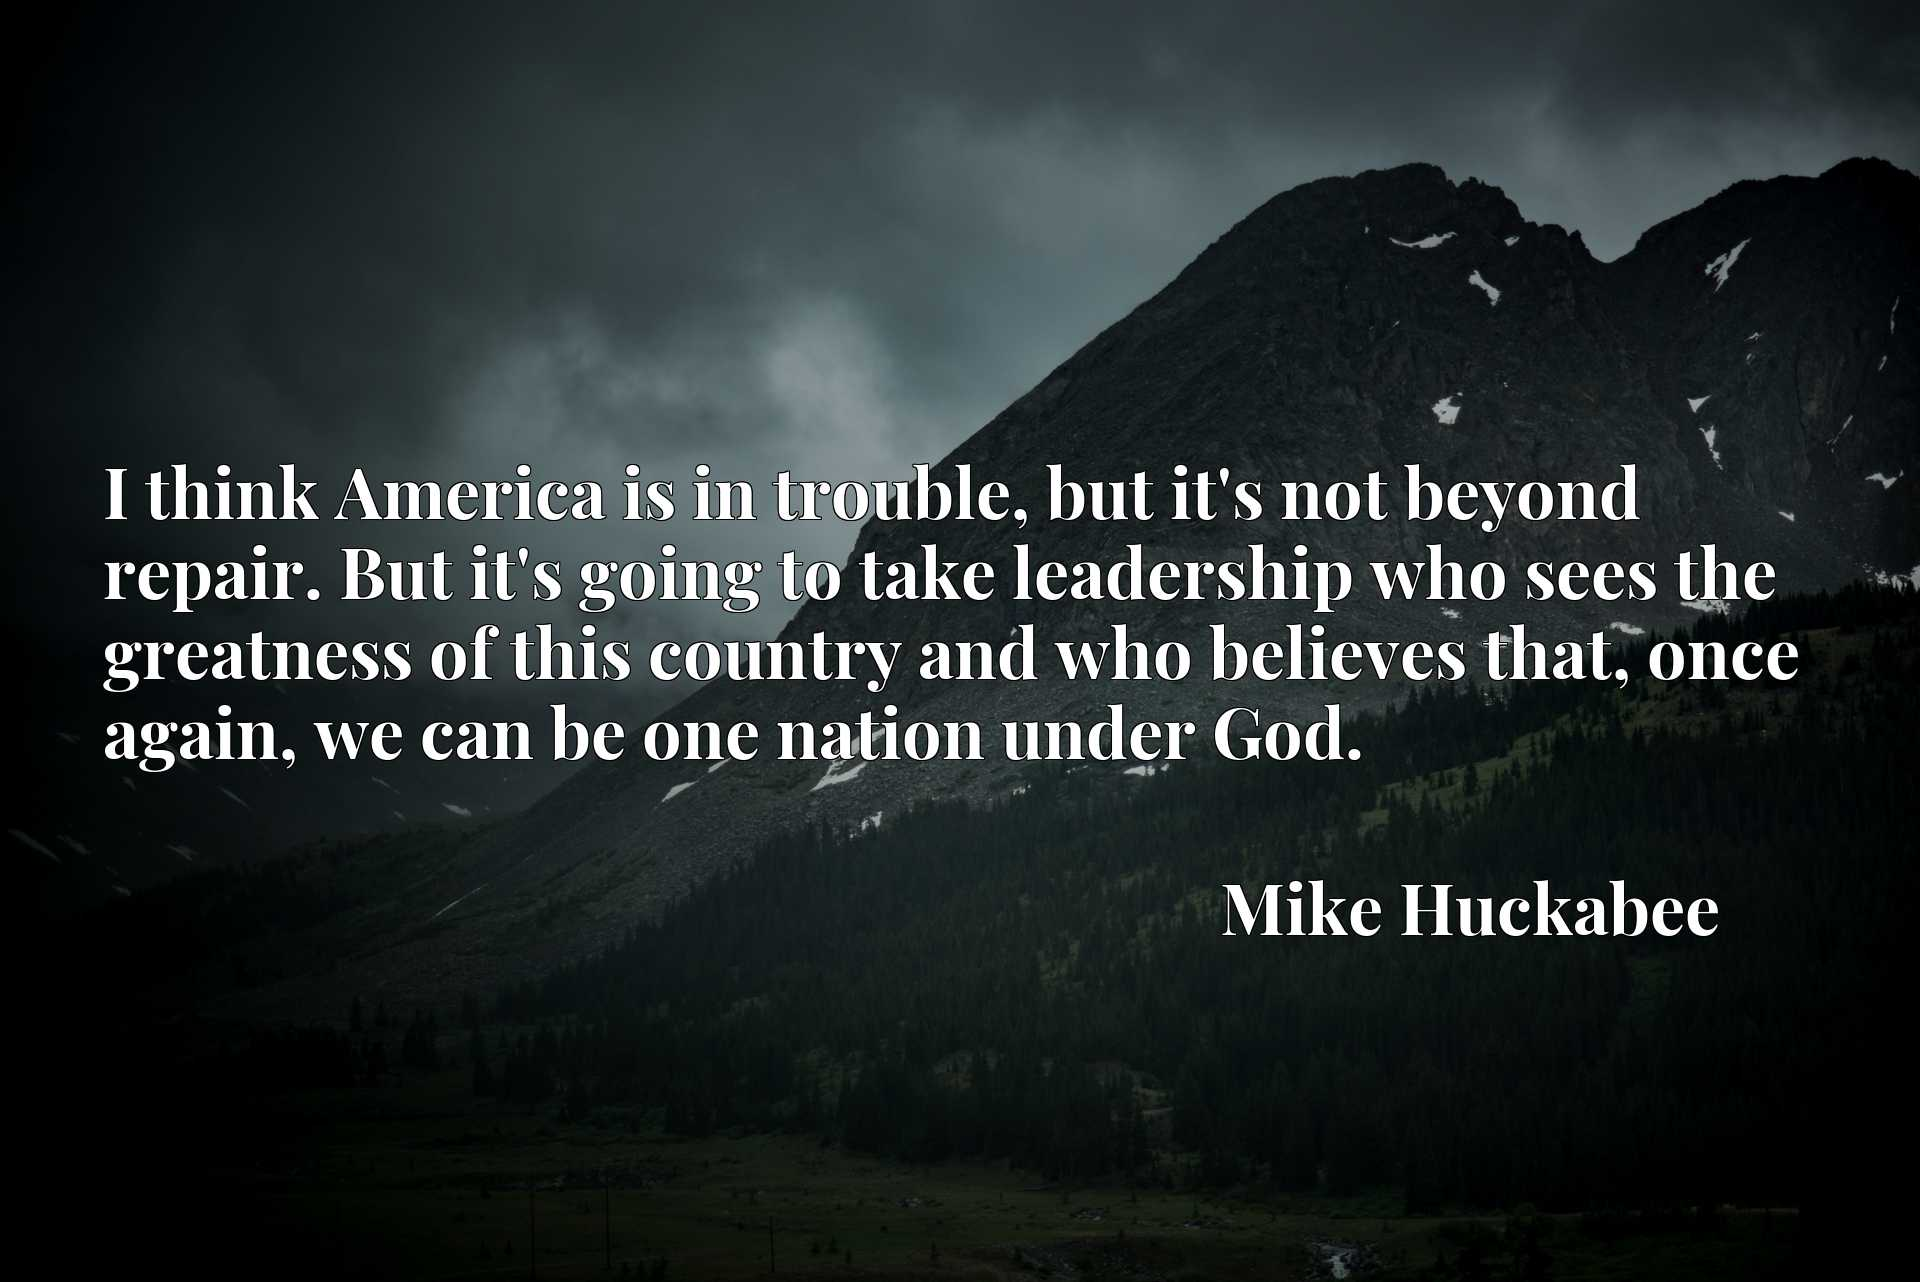 Quote Picture :I think America is in trouble, but it's not beyond repair. But it's going to take leadership who sees the greatness of this country and who believes that, once again, we can be one nation under God.